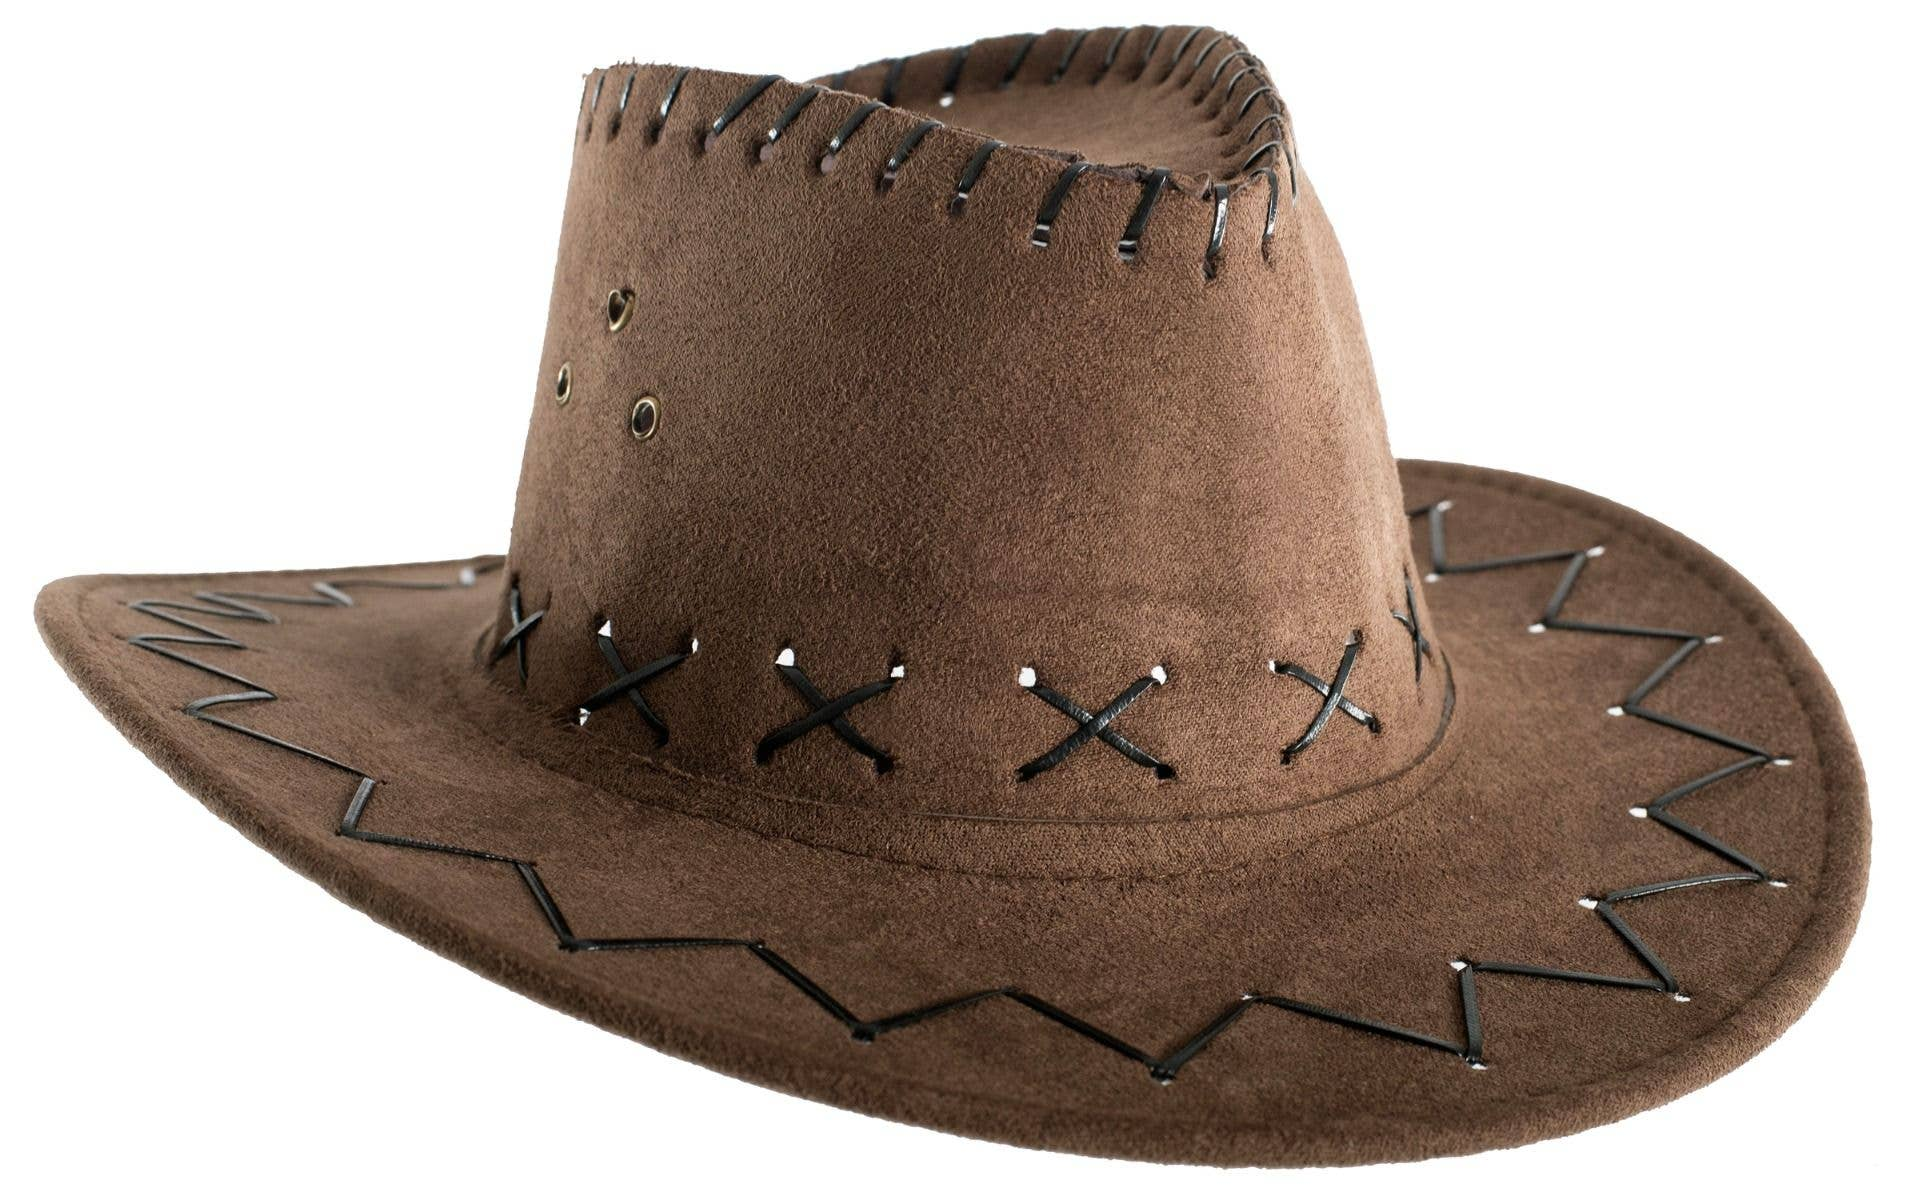 eabdcde0c66fb Brown Kids Boys Cowboy Outback Costume Accessory Hat Second Image